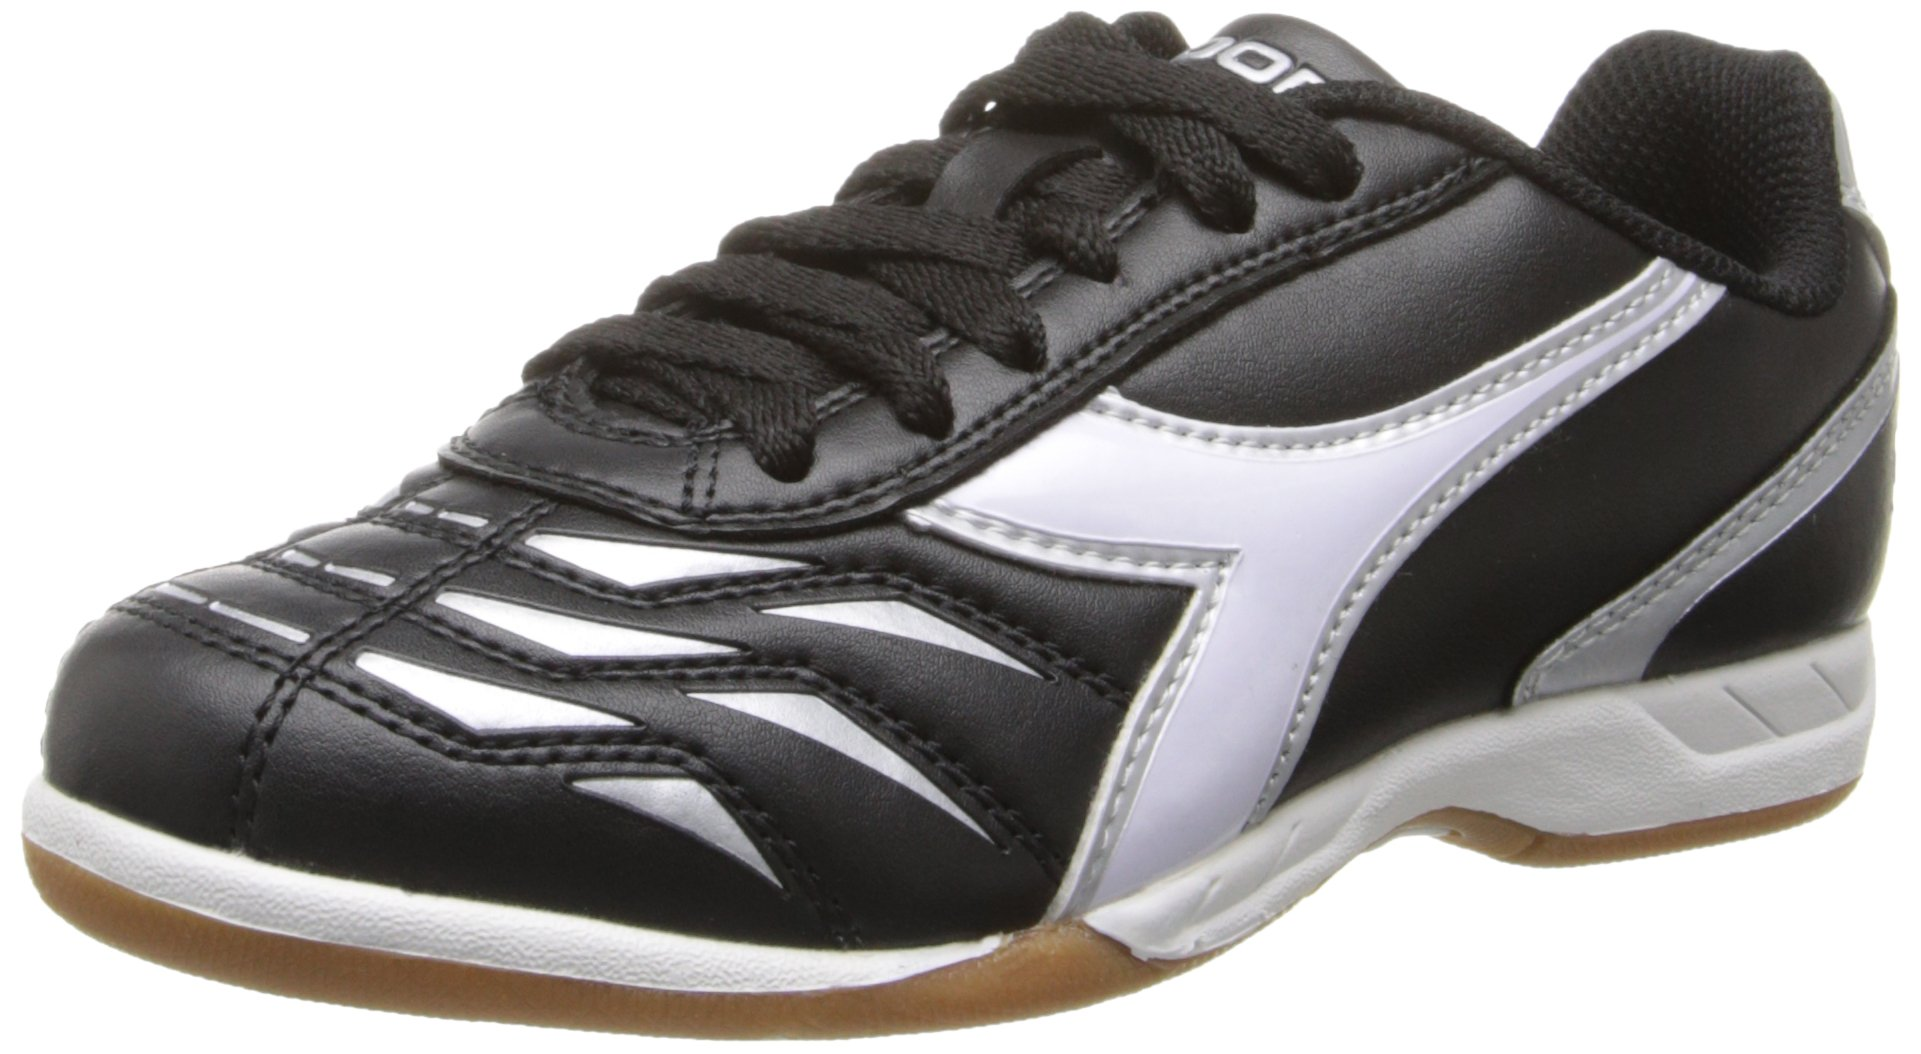 Diadora Capitano ID JR Indoor Soccer Shoe, Black/White, 3.5 M US Big Kid by Diadora (Image #1)